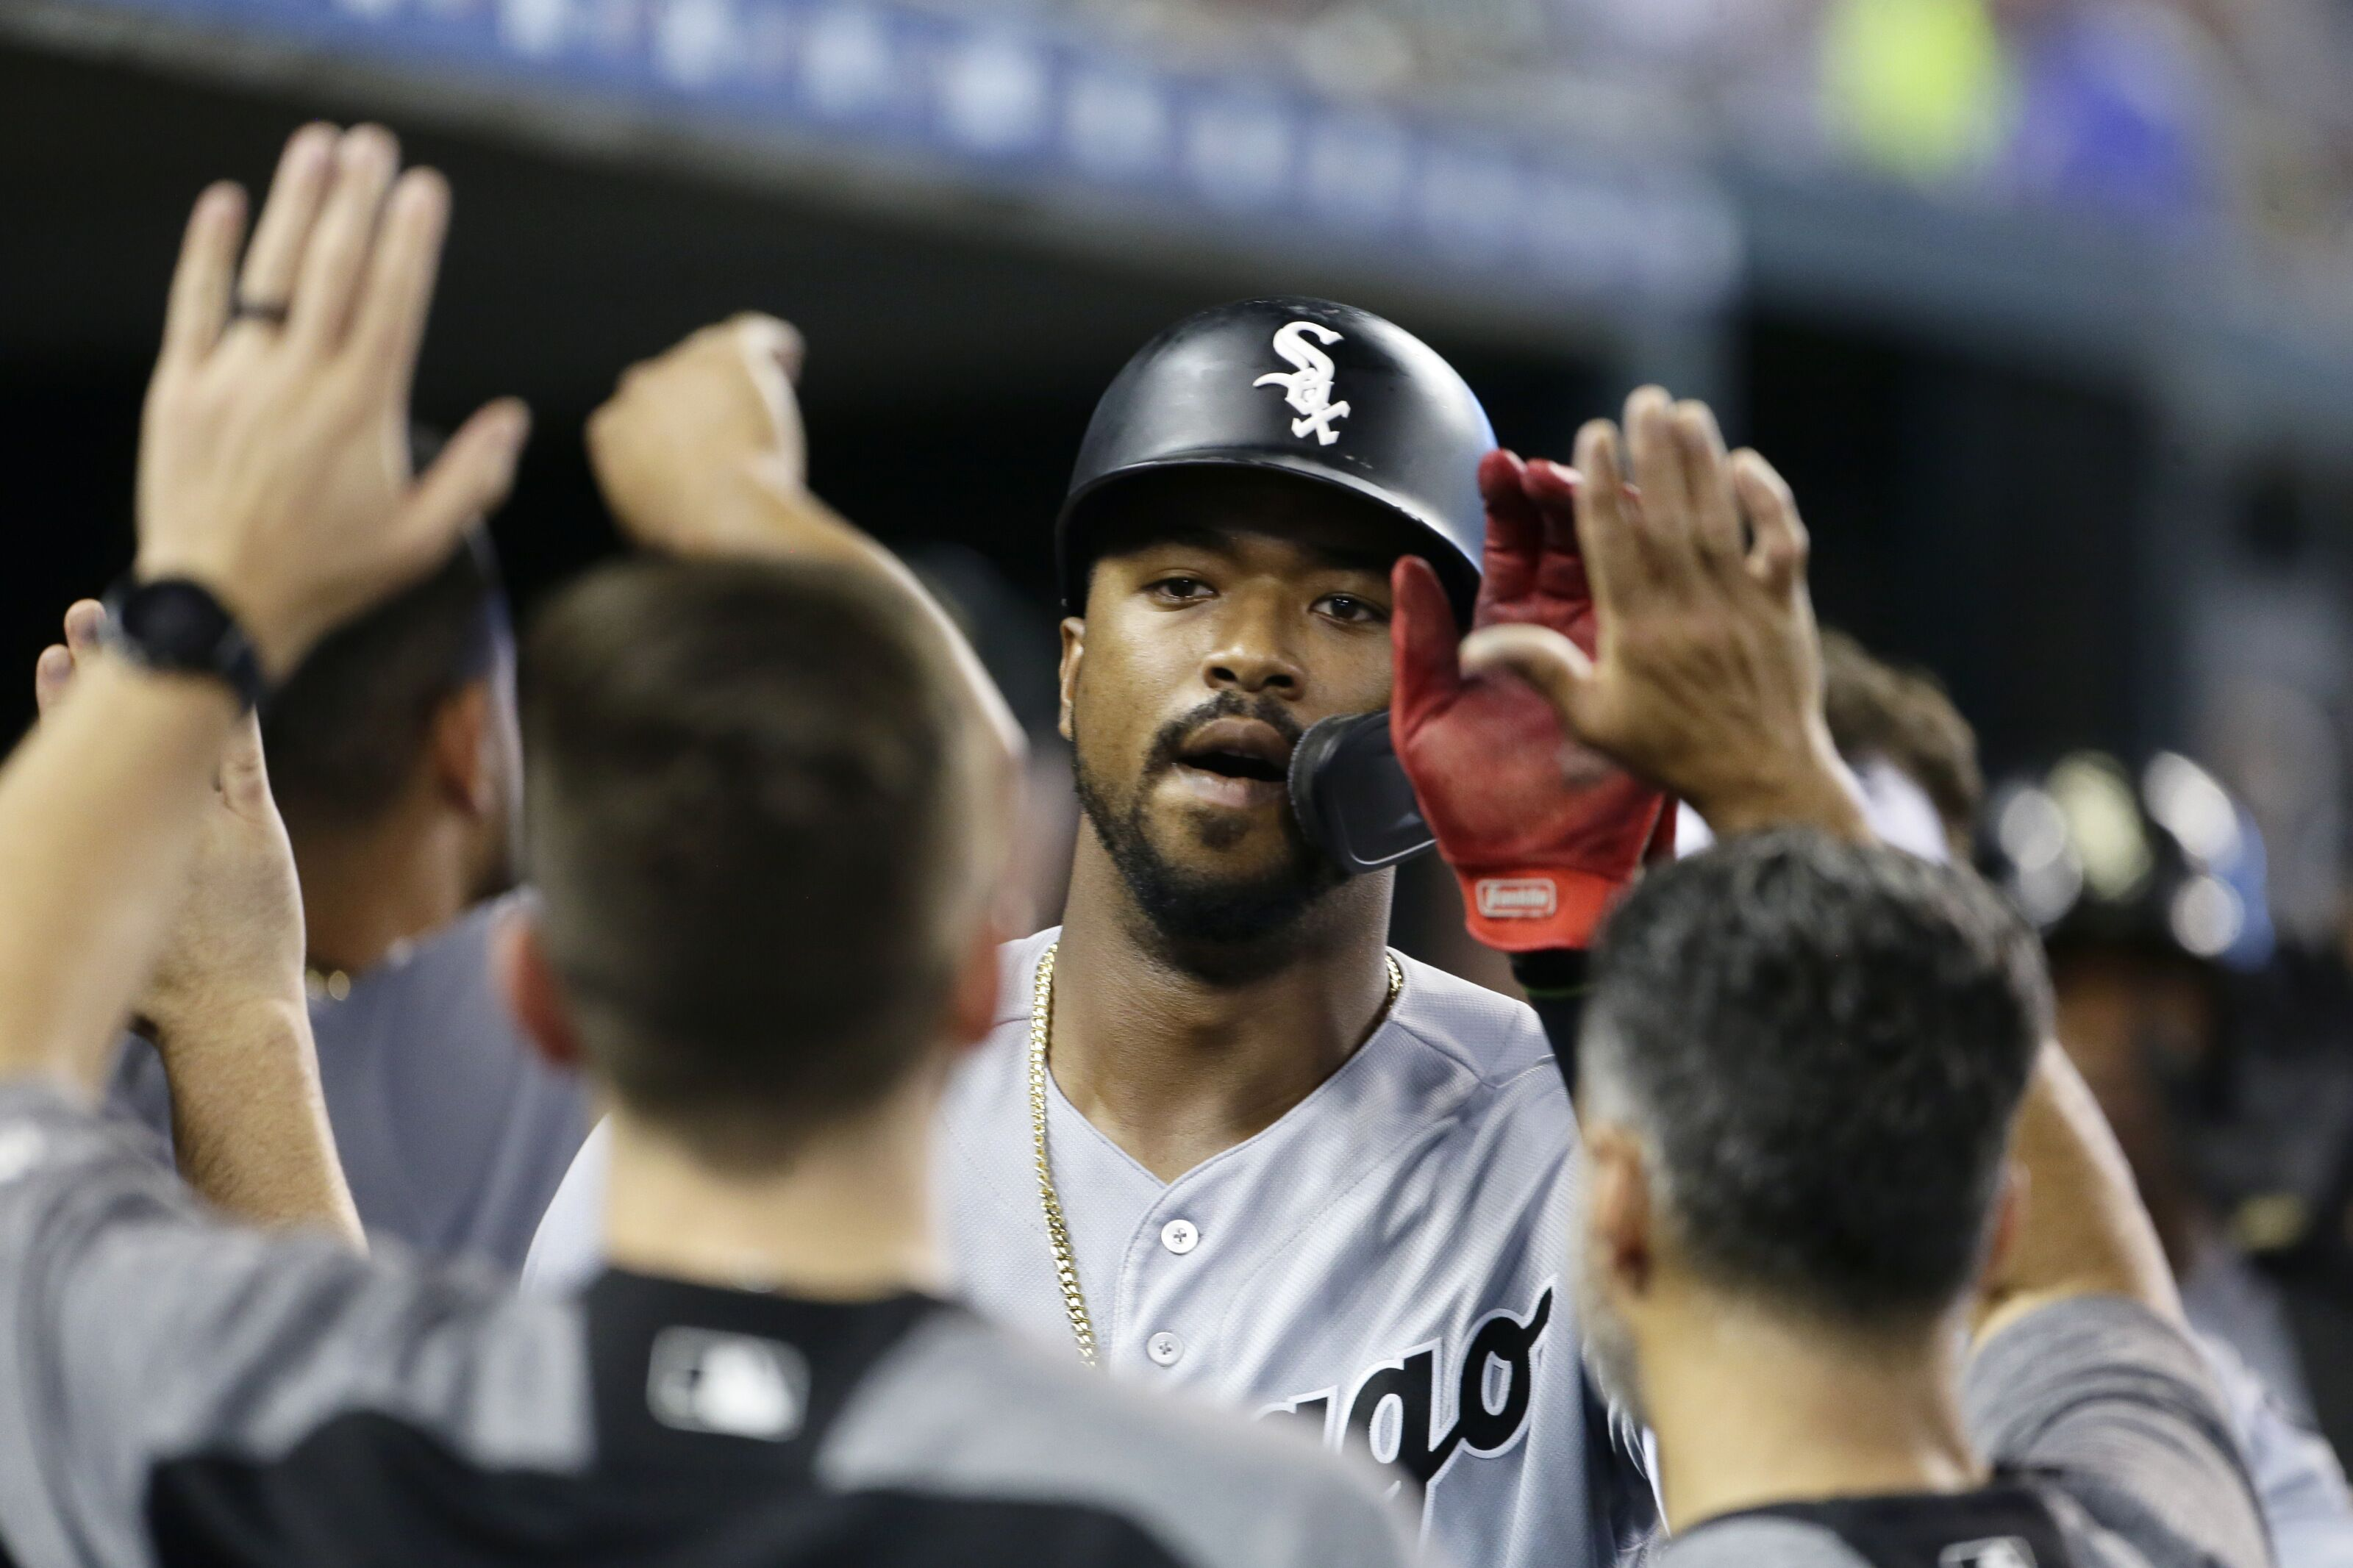 Chicago White Sox: Eloy Jimenez' ceiling in 2020